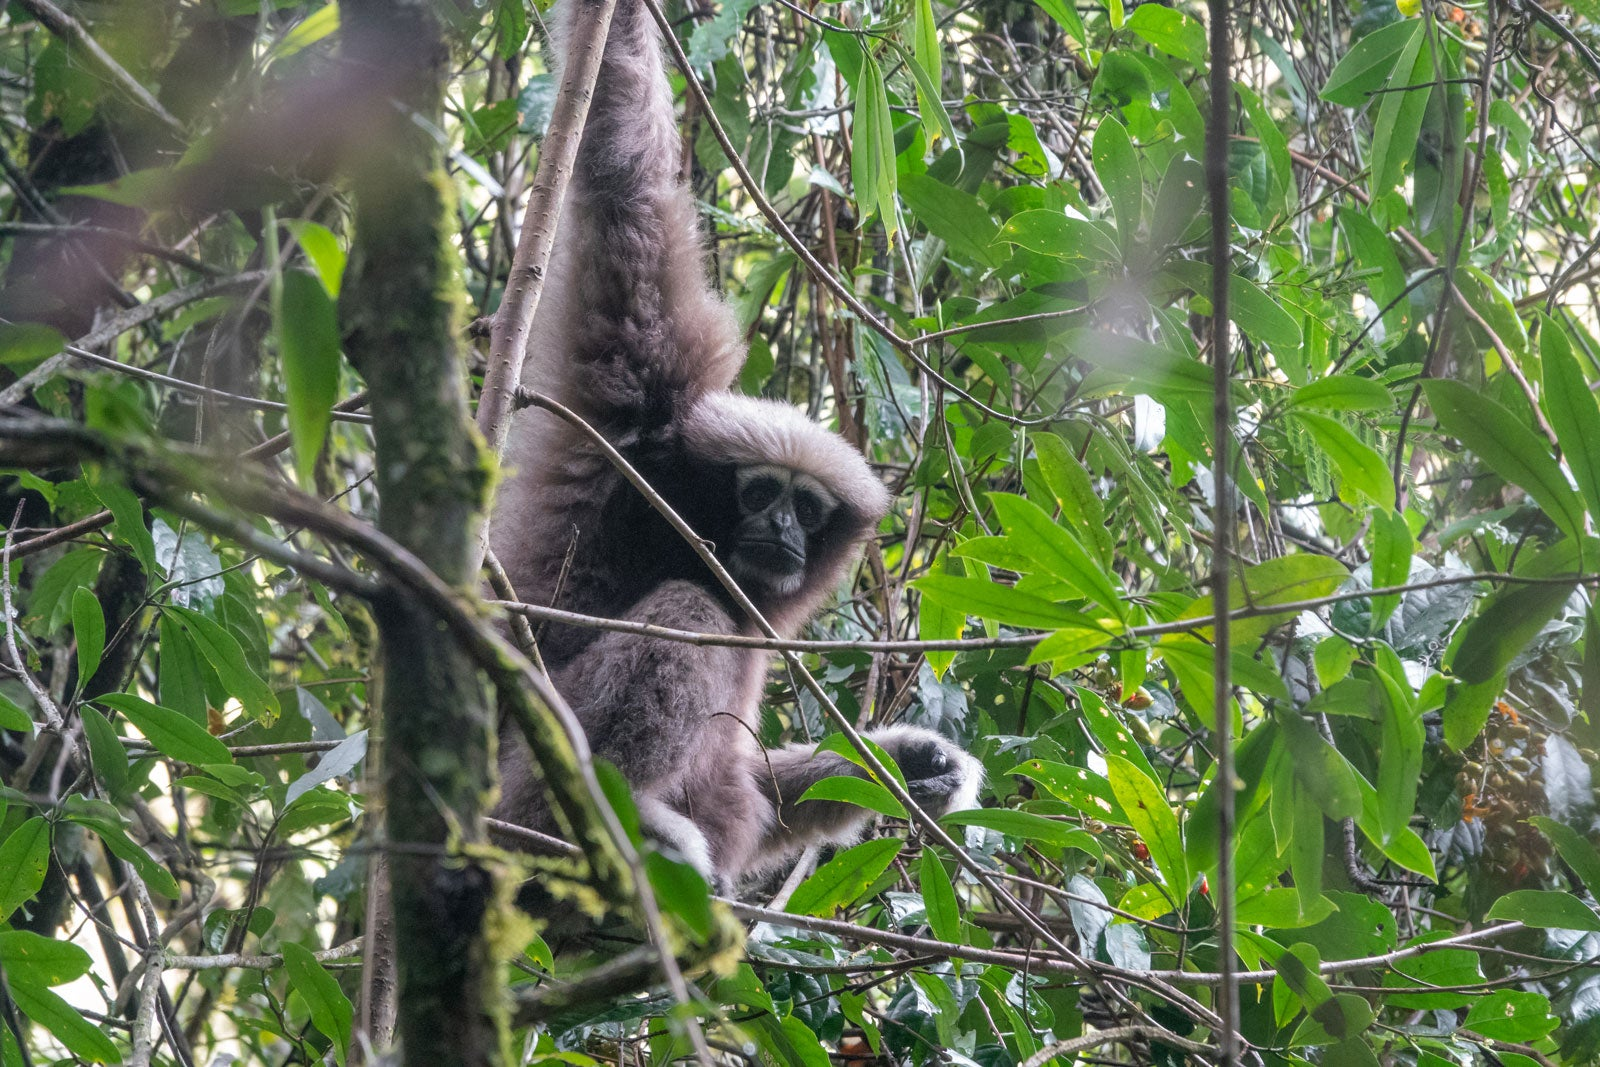 The Skywalker hoolock gibbon hangs from a tree in the jungle, it has plush grey fur and eyes rimmed by white fur.